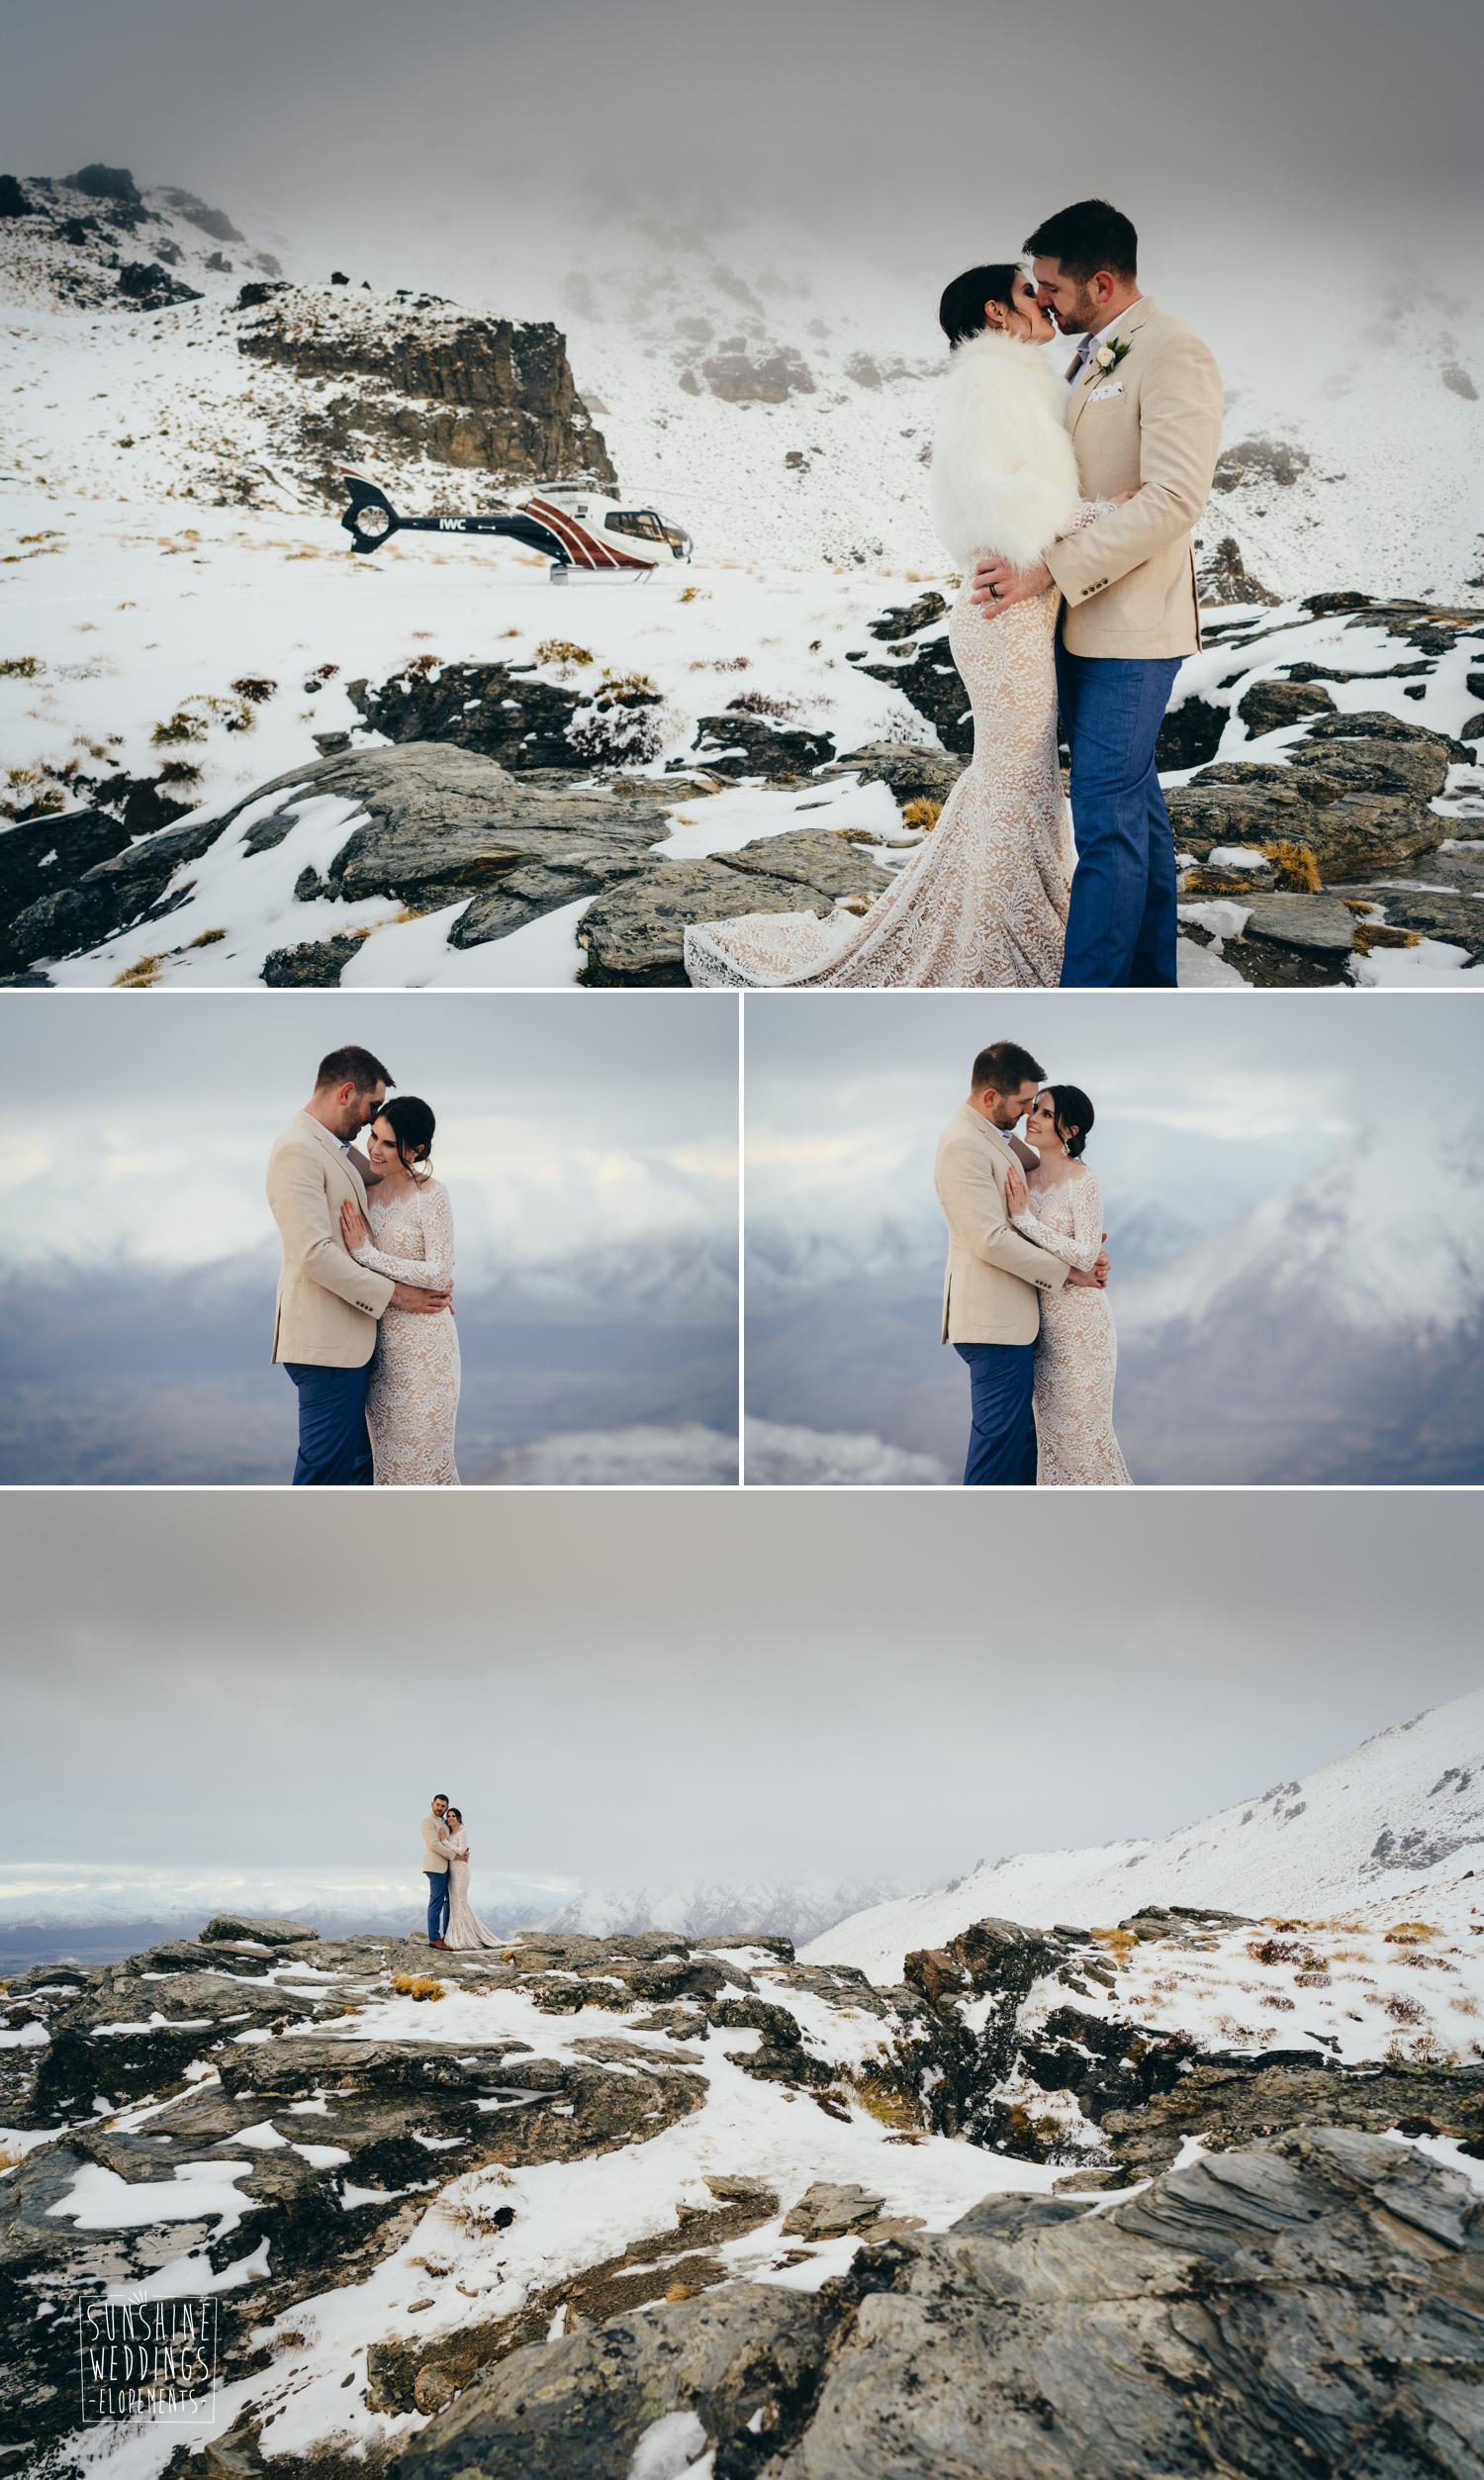 Winter wedding planner New Zealand